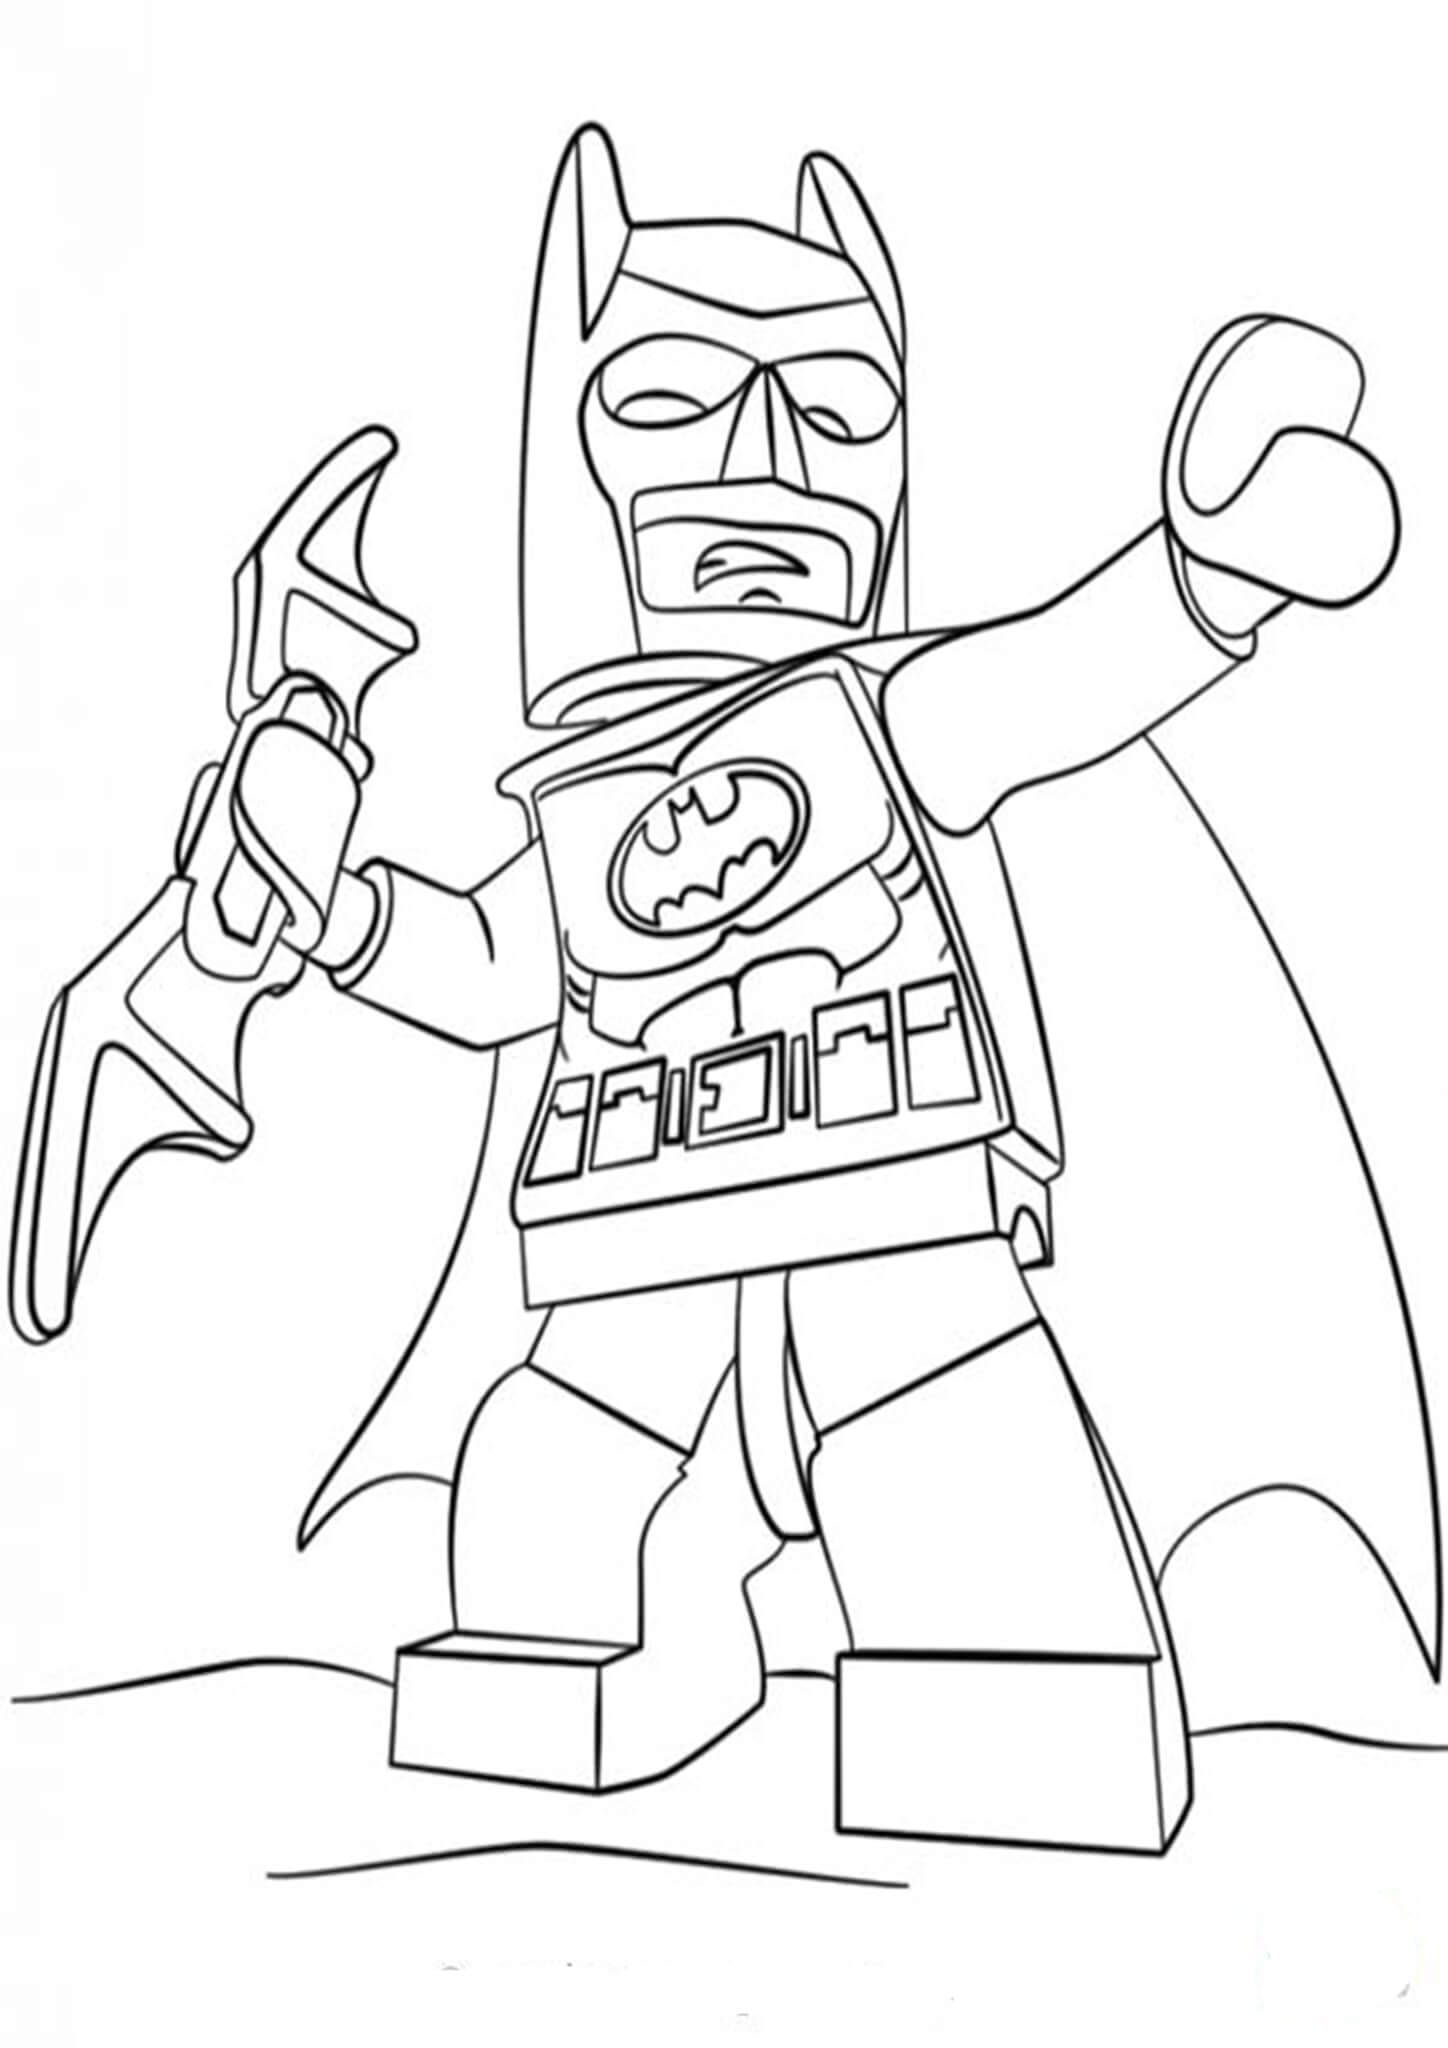 Free Easy To Print Lego Batman Coloring Pages Avengers Coloring Pages Lego Coloring Pages Superhero Coloring Pages